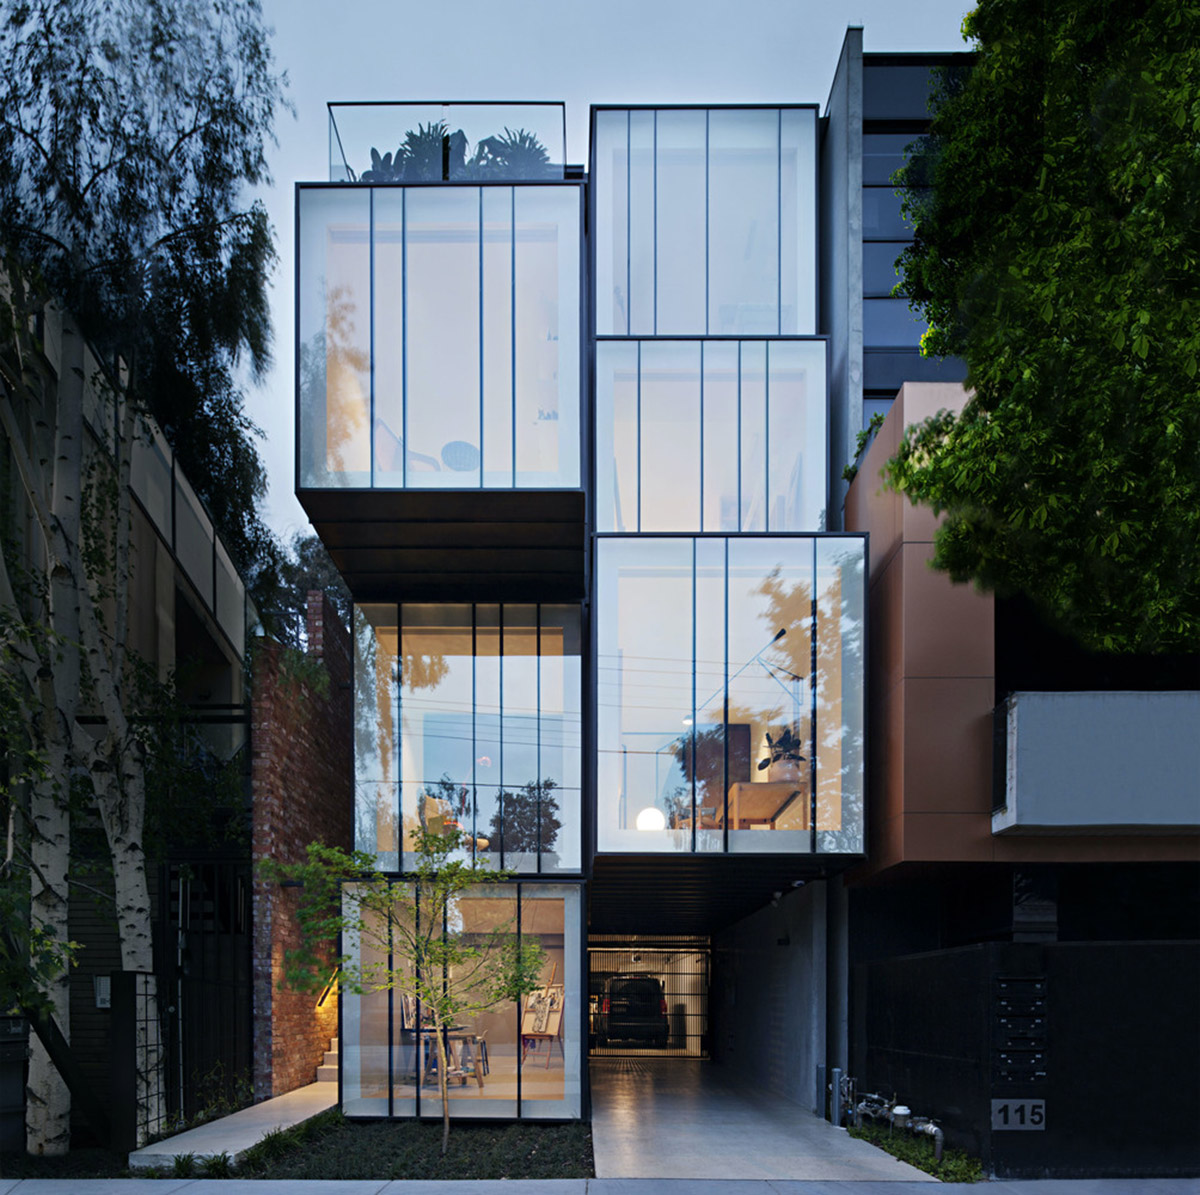 Melbourne: protruding glass boxes for mixed-use housing